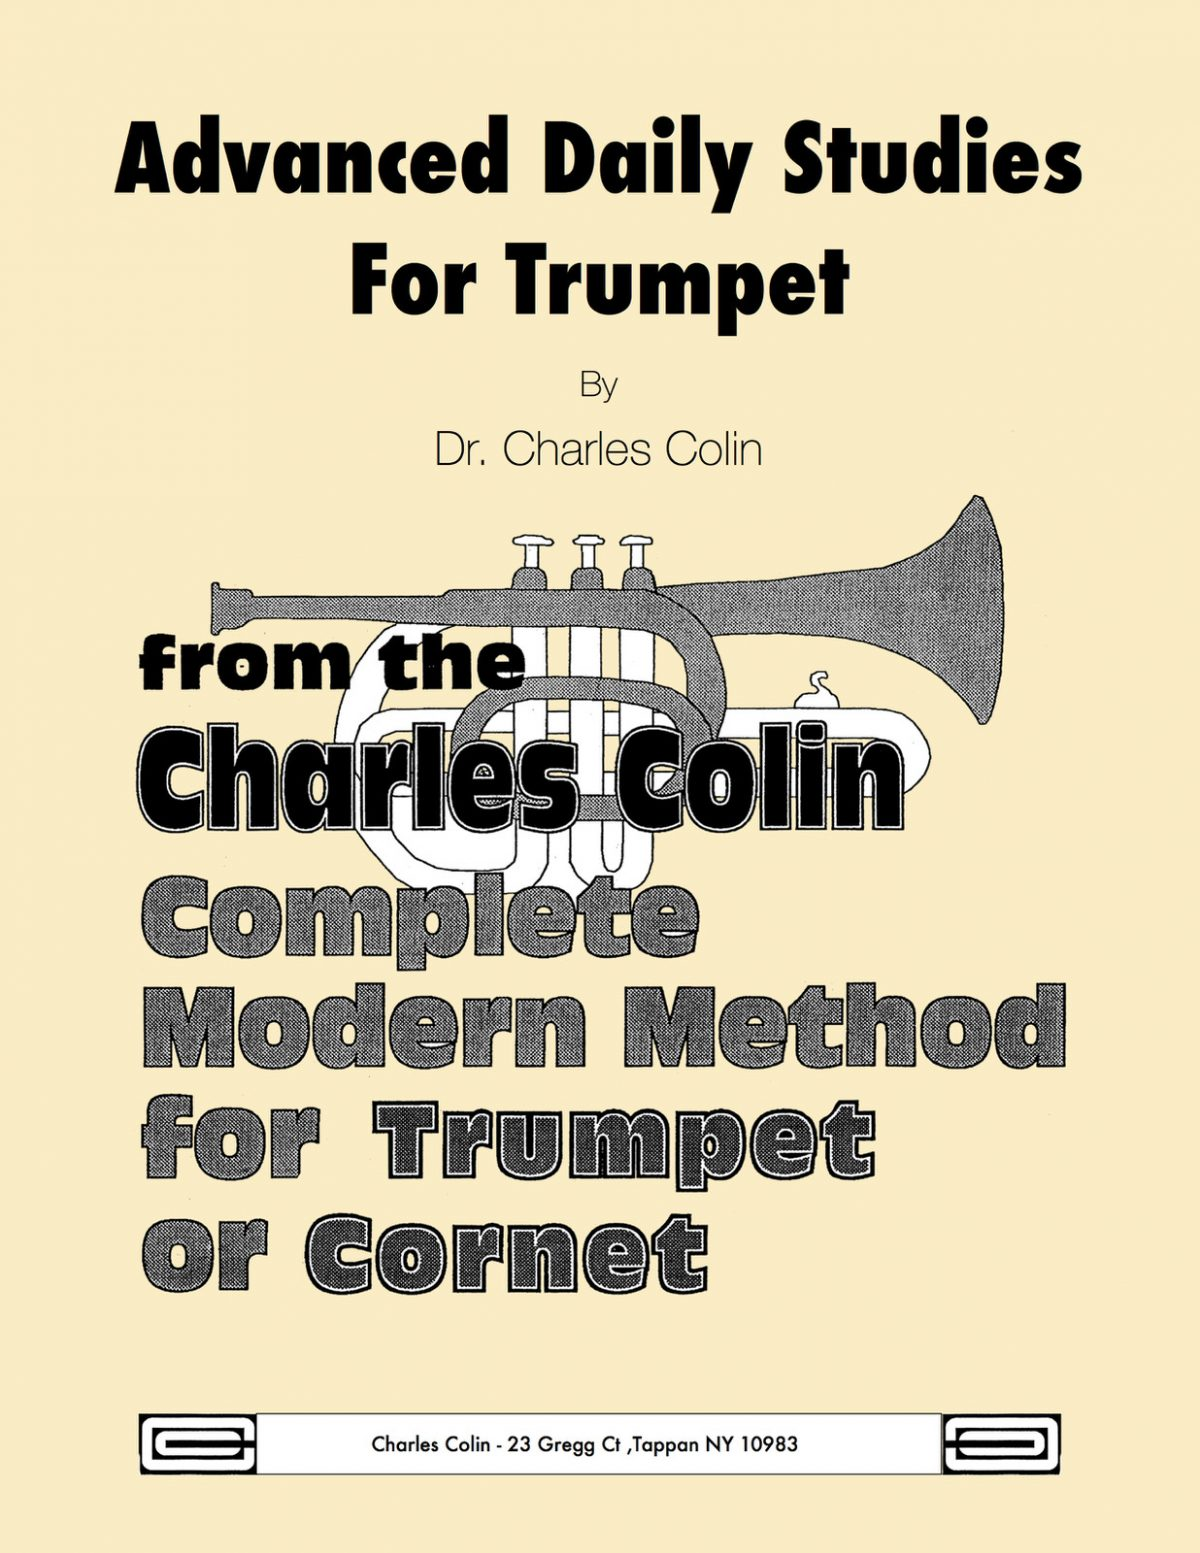 Colin, Advanced Daily Studies for the Trumpet or Cornet